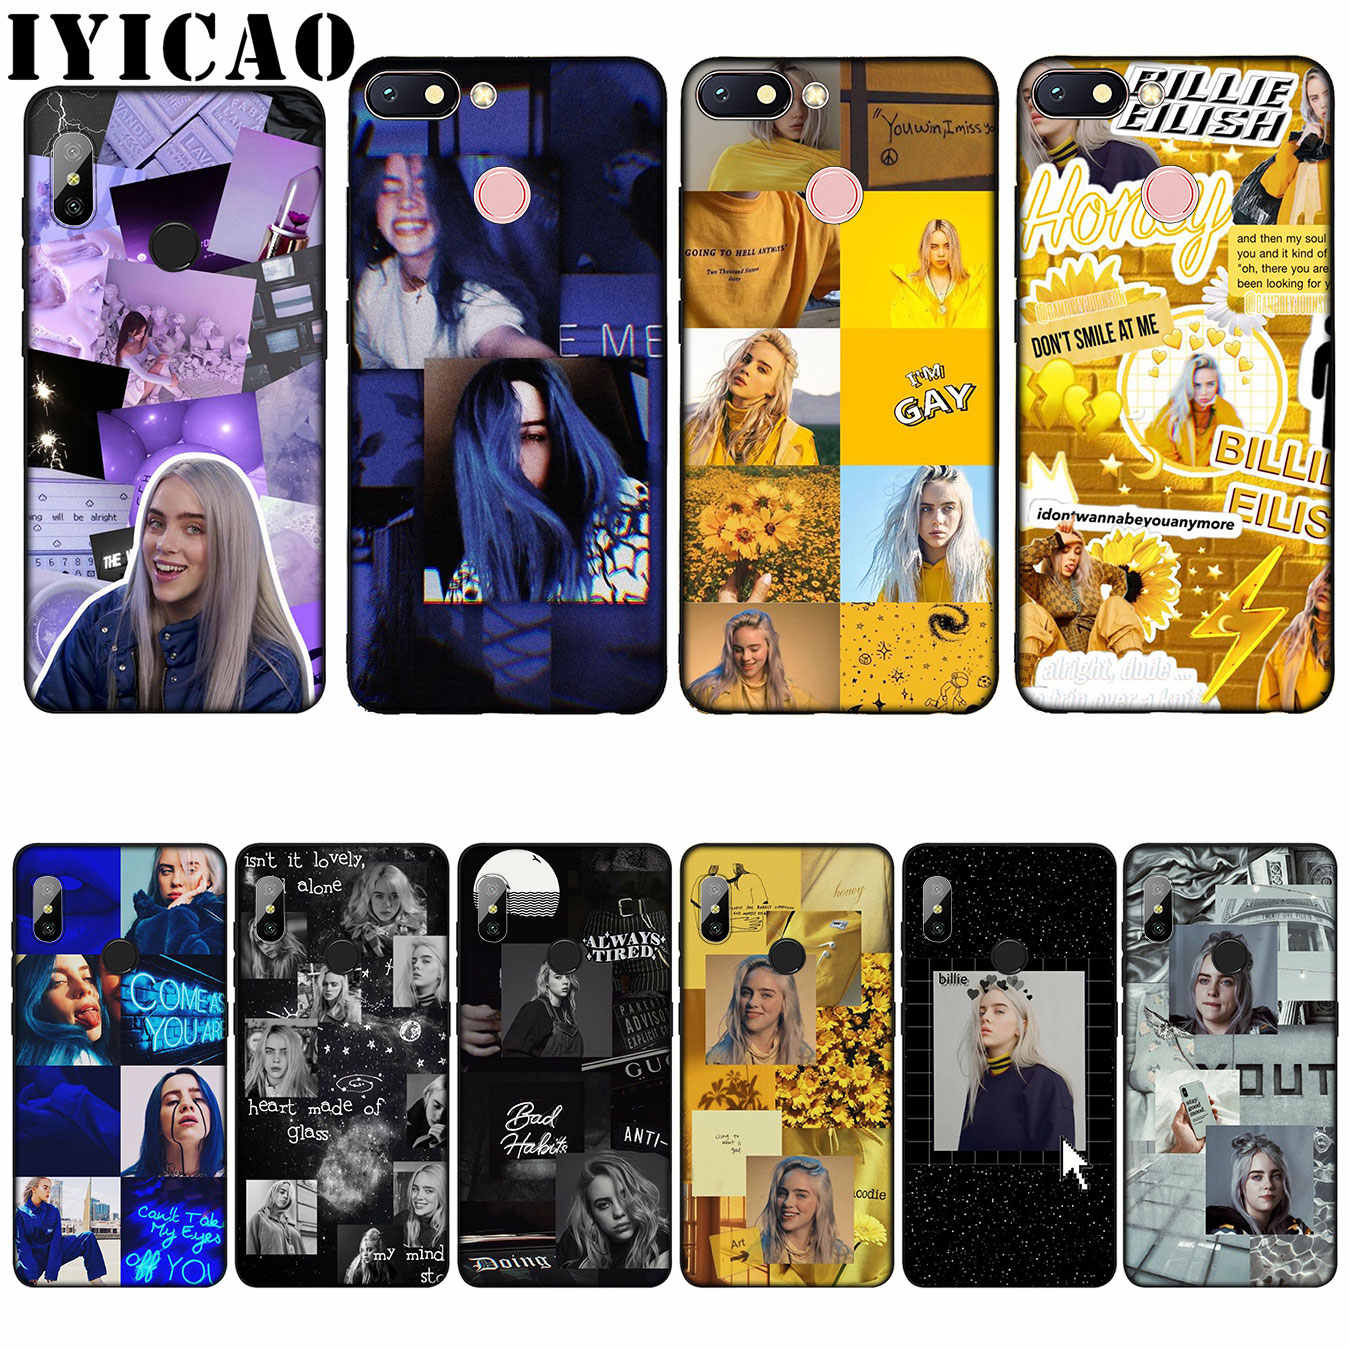 IYICAO Billie Eilish Khalid Lovely Silicone Soft Case for Xiaomi Redmi 6A 5A Note 7 4 4X 5 Plus 6 Pro Black TPU Cover